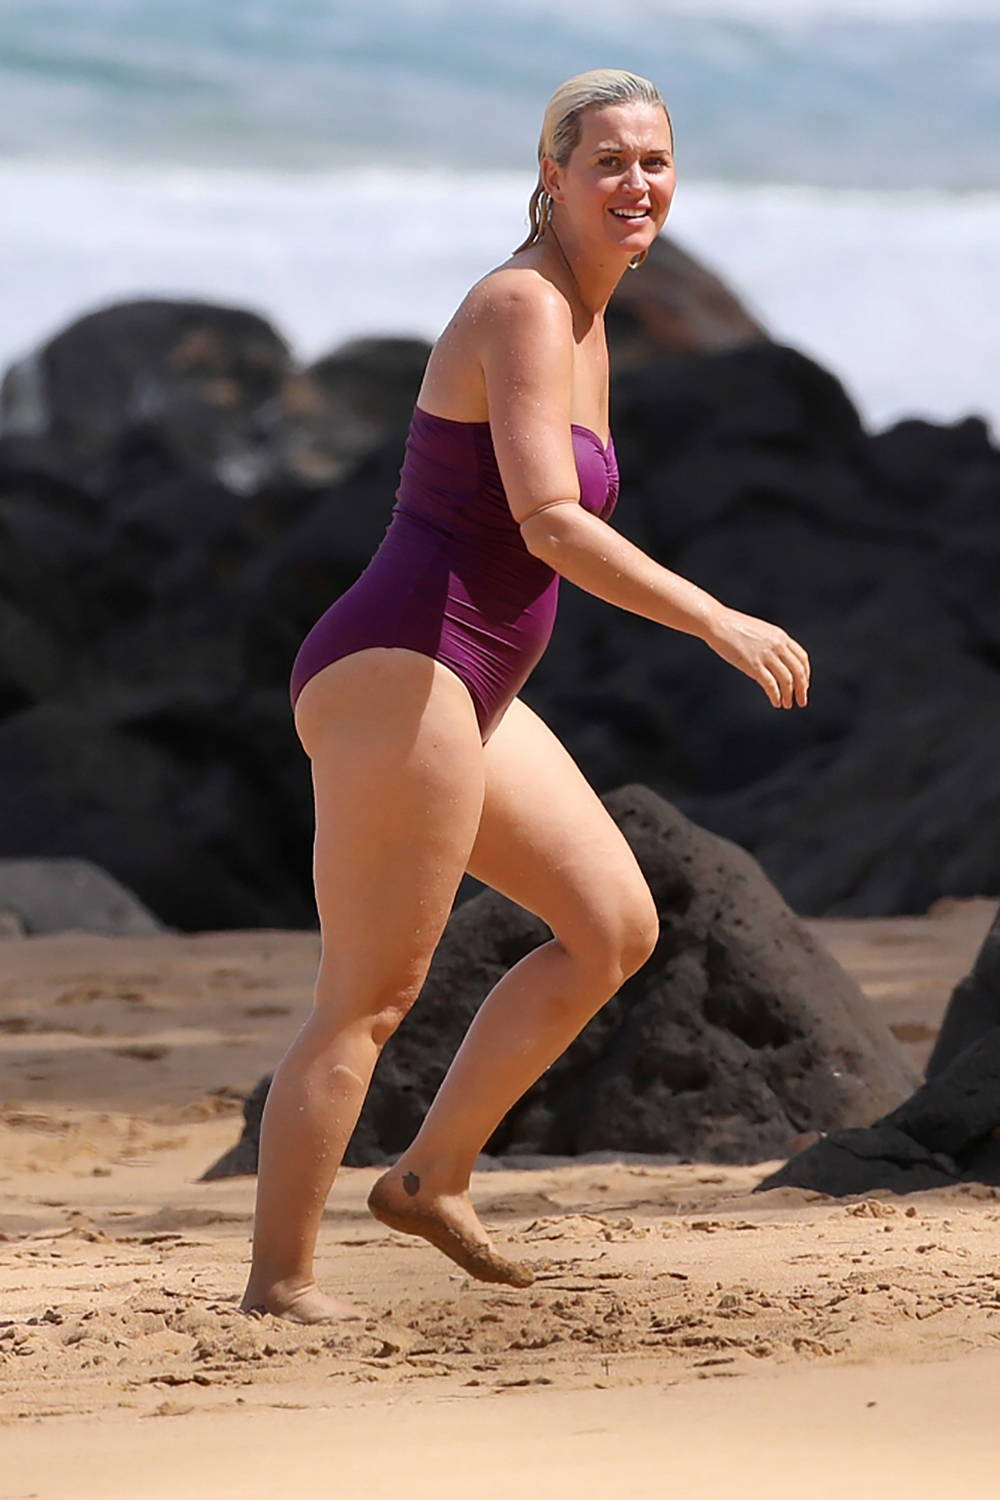 Katy Perry wears a purple swimsuit while enjoying a day at the beach while on vacation in Hawaii